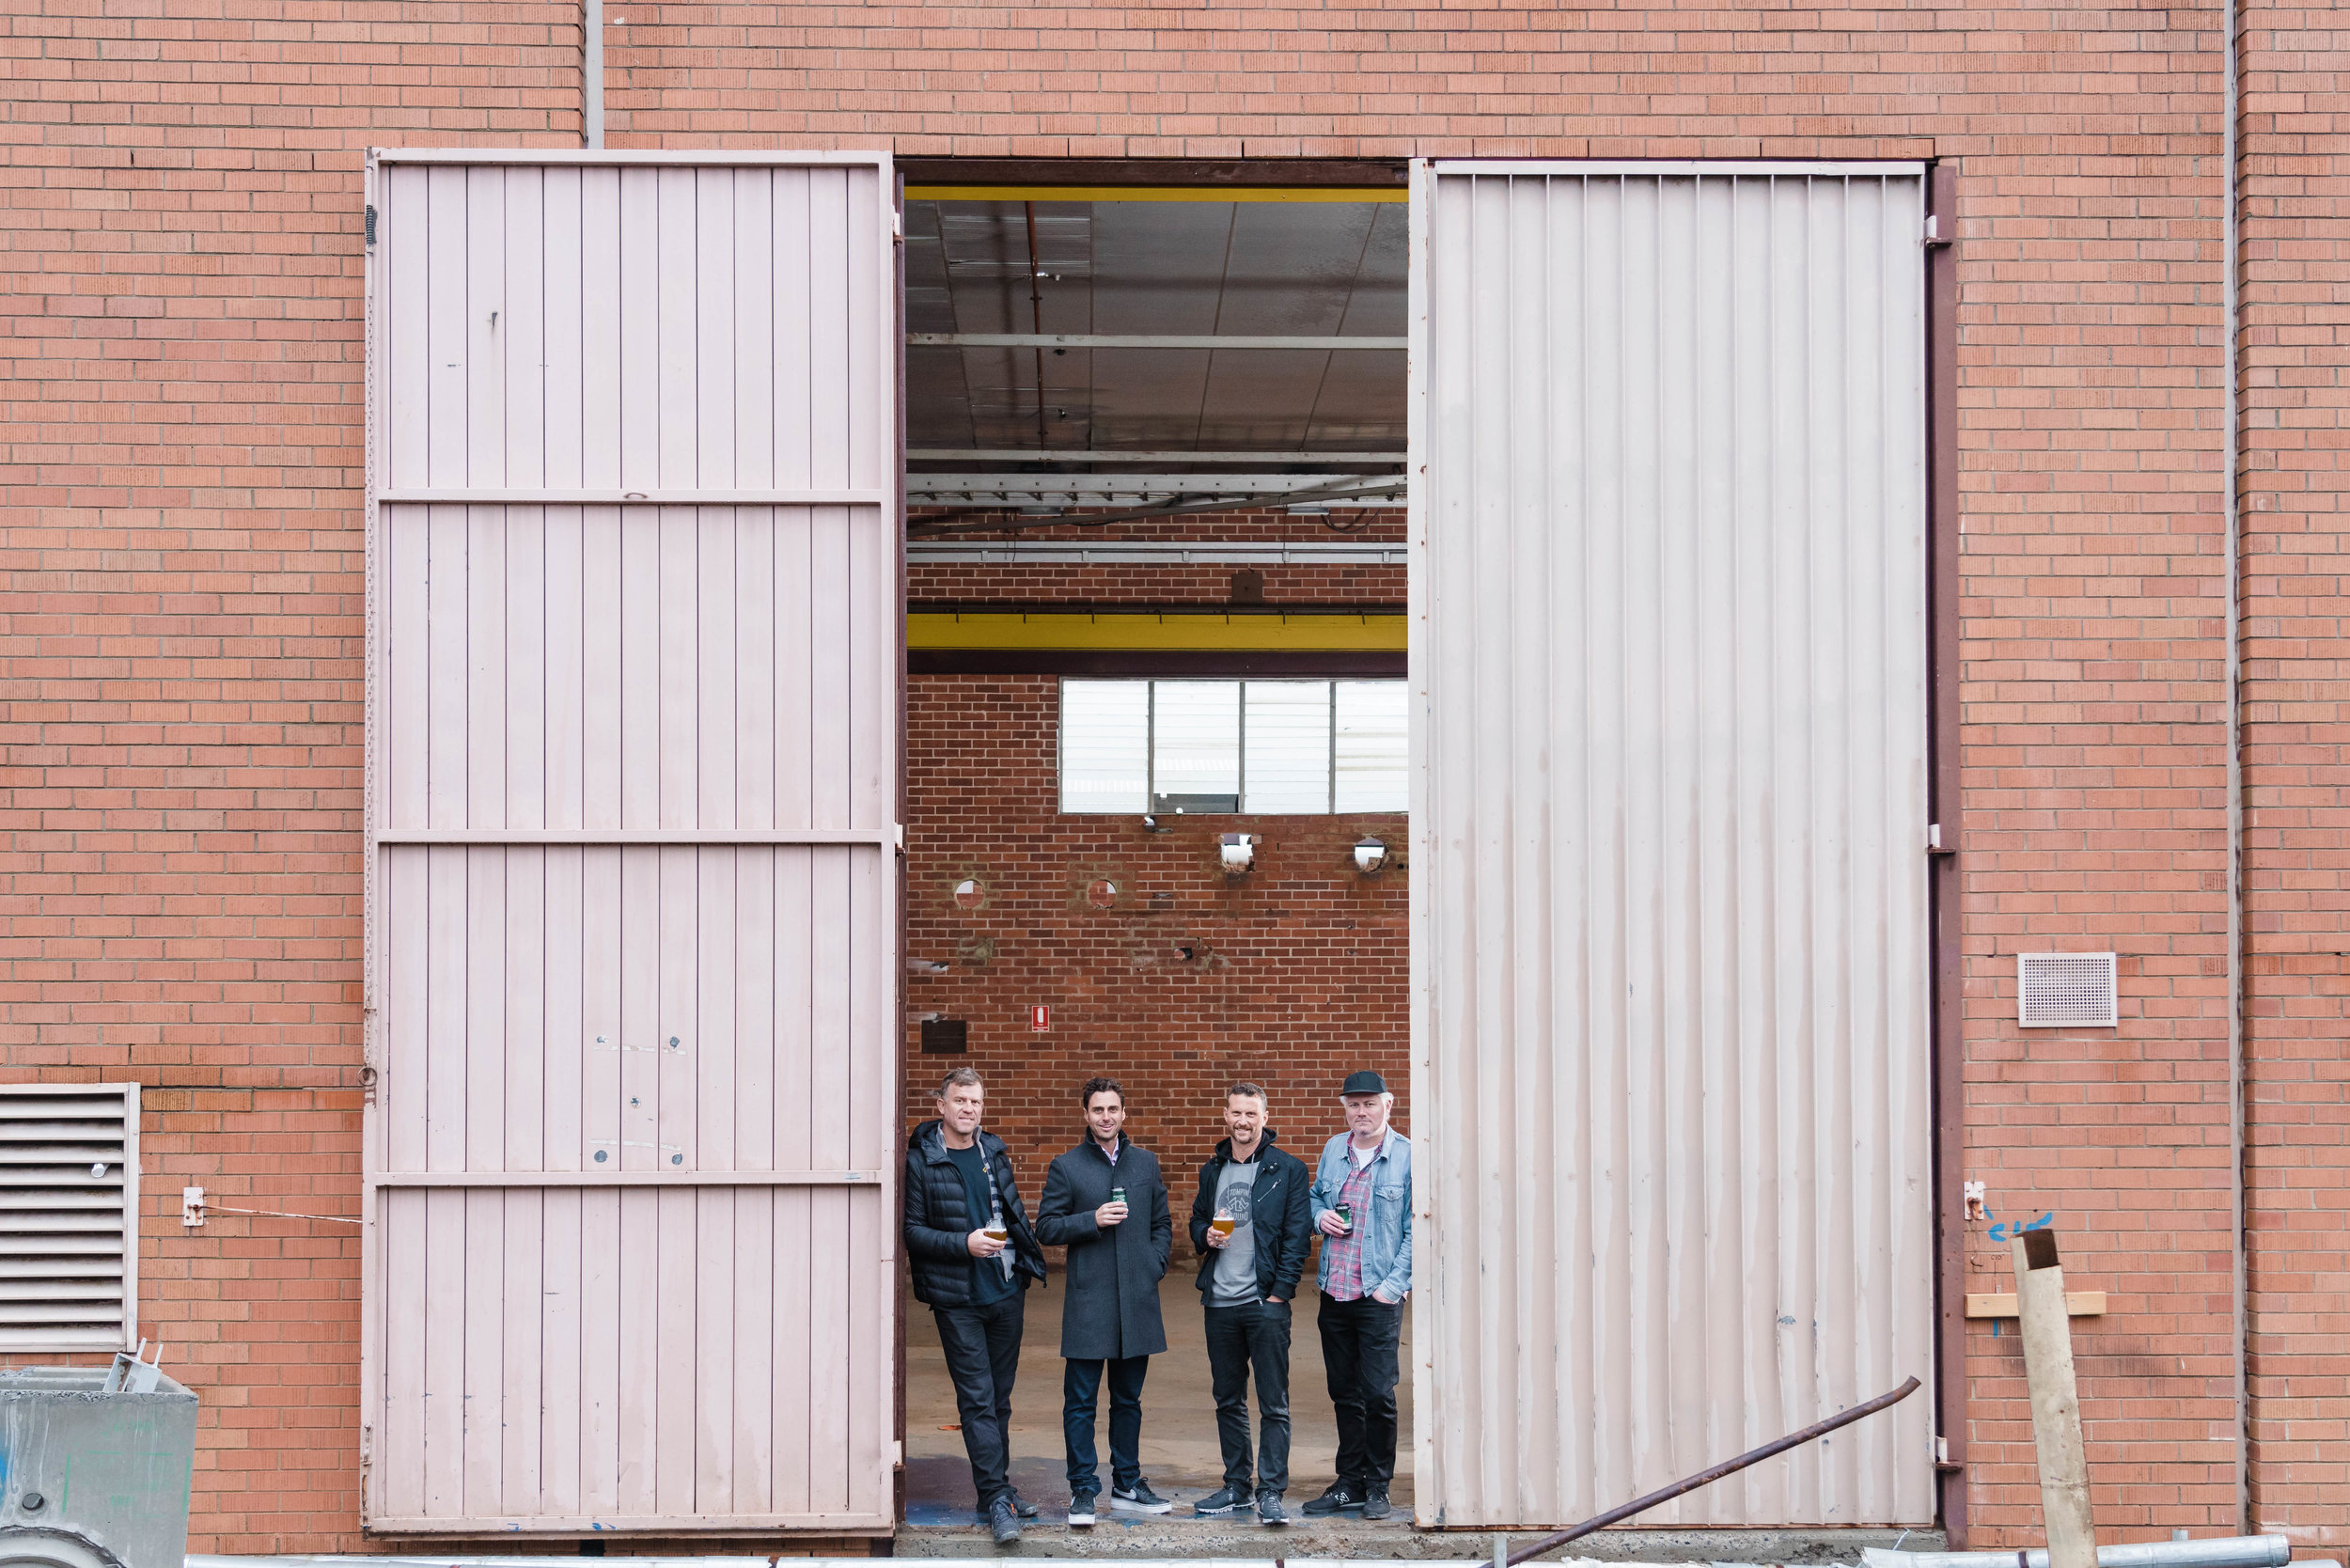 Steve, Guy and Justin at the Stomping Ground Morris Moor site with Up Property Managing Director Adam Davidson (second from left). The team expect the venue to open early in 2020.